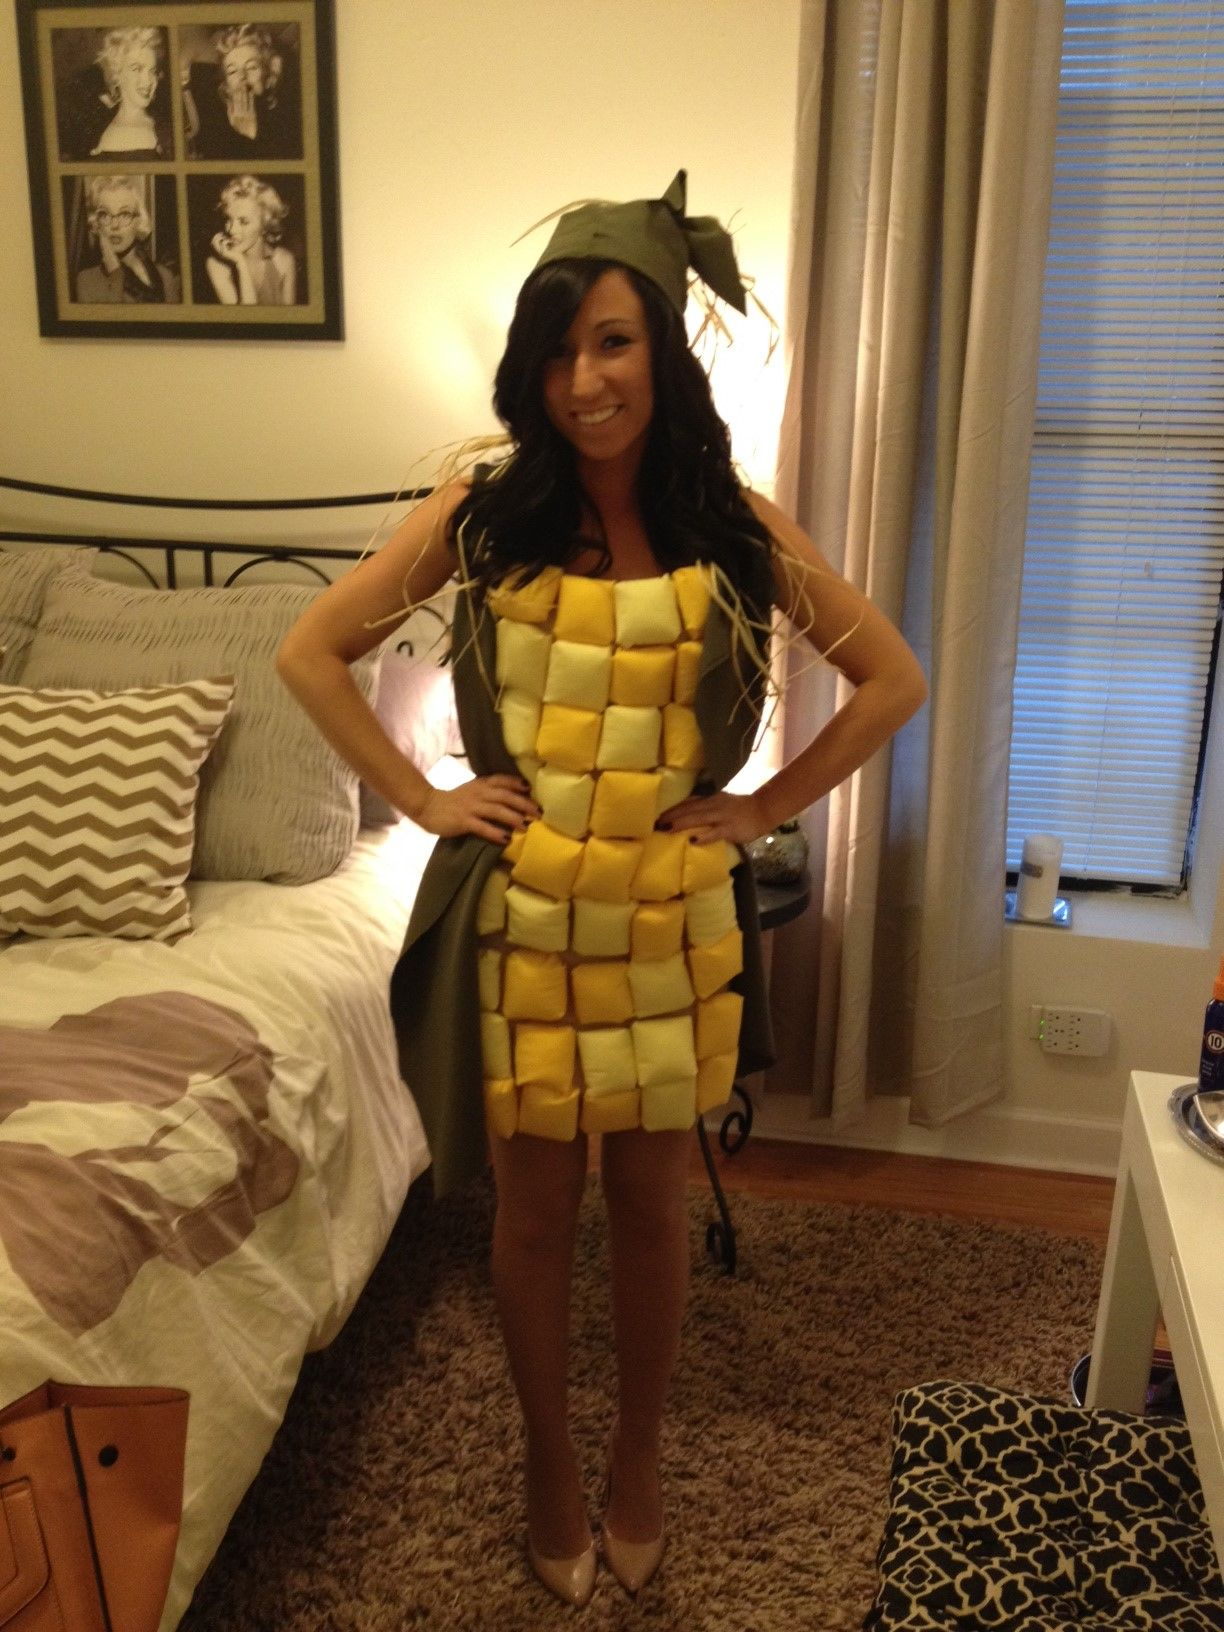 corn on the cob halloween costume funny halloween costume. Black Bedroom Furniture Sets. Home Design Ideas